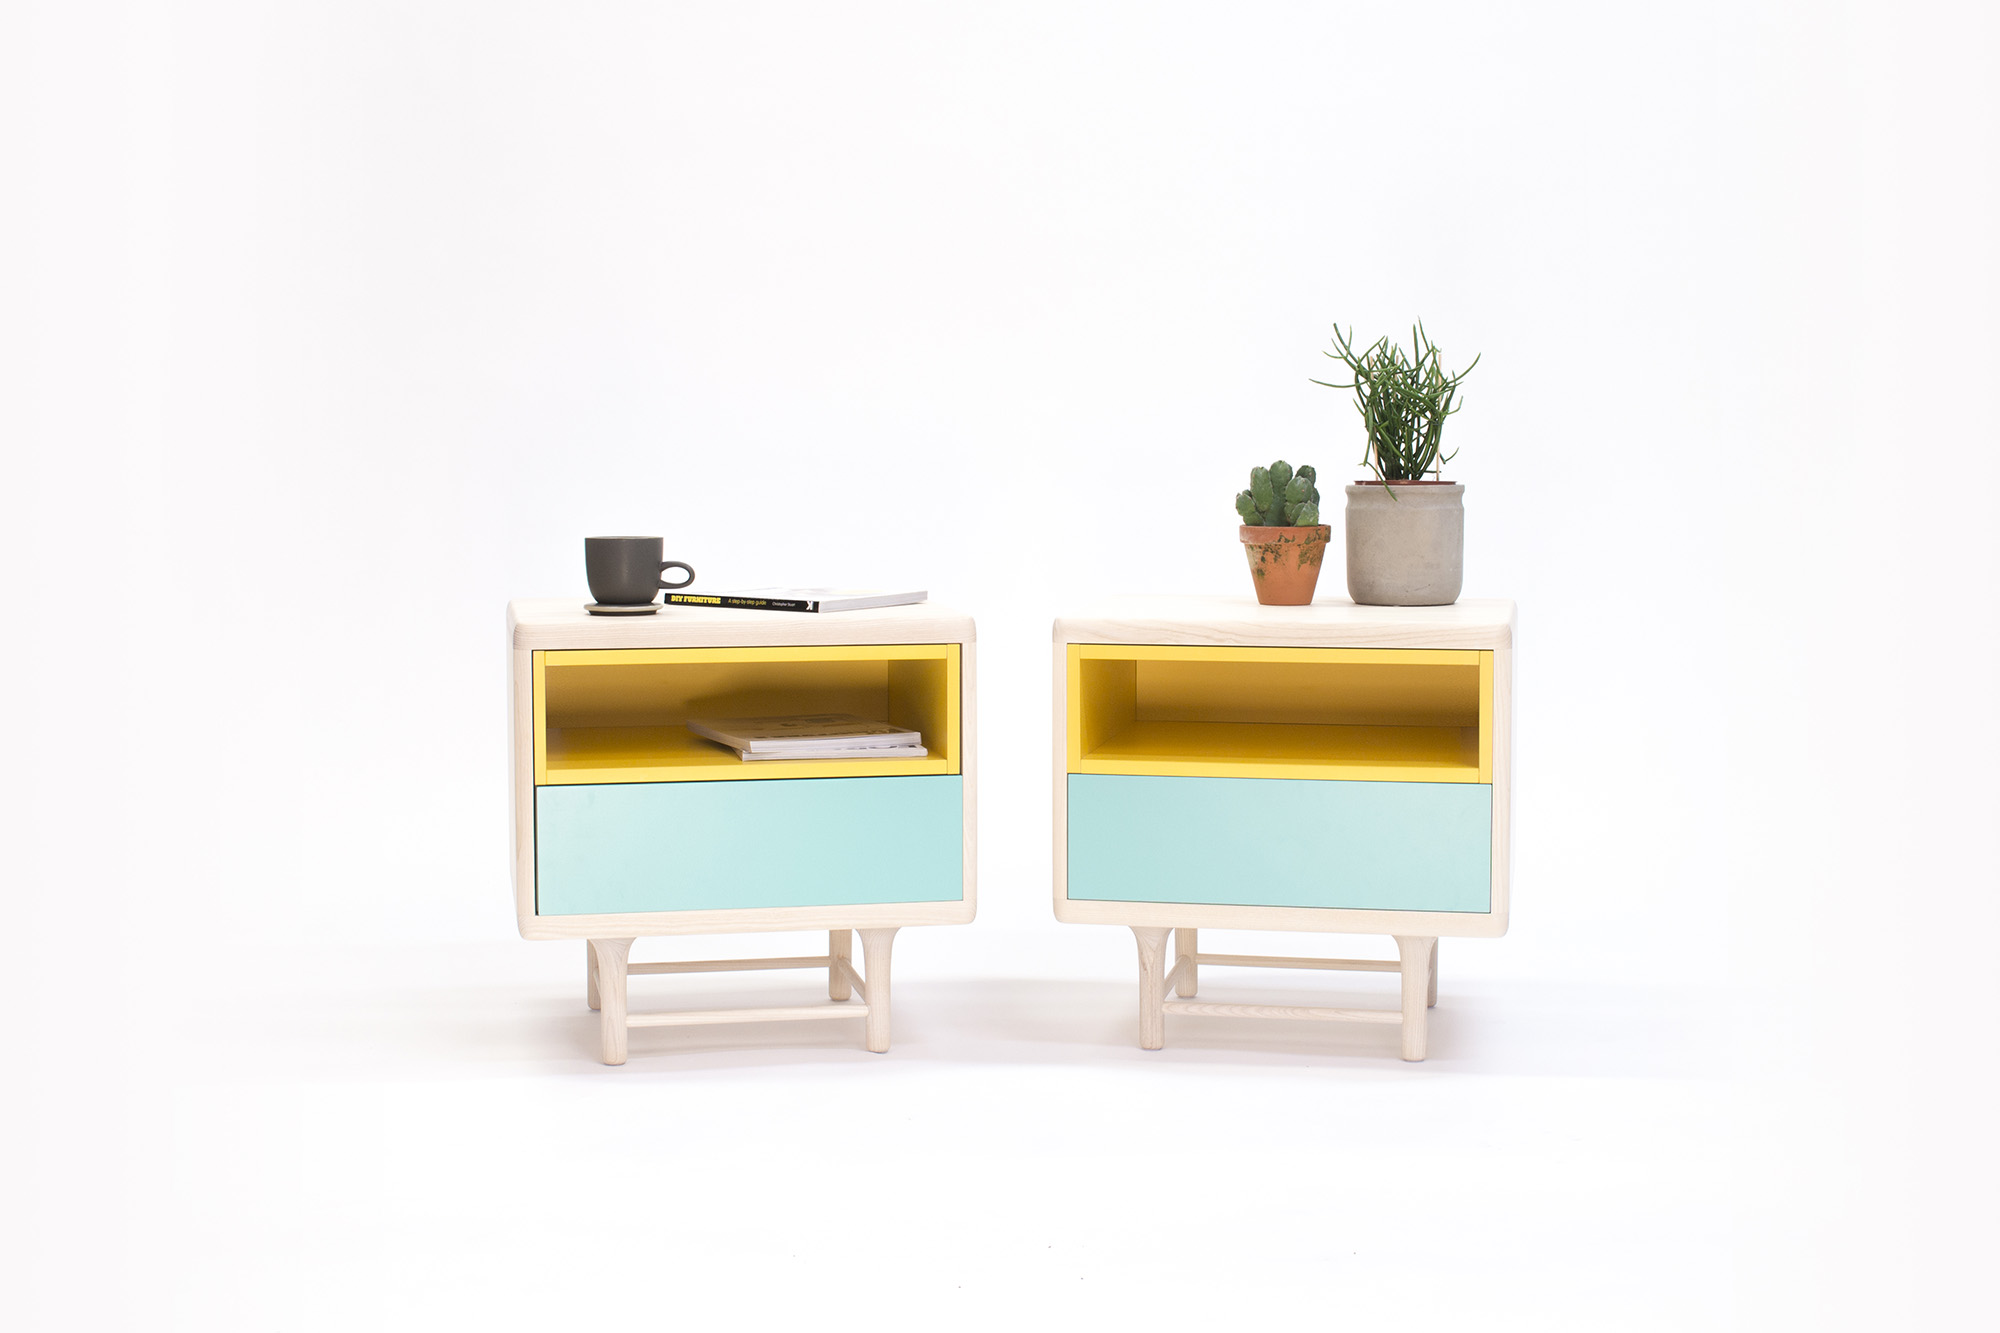 Minimal scandinavian furniture by designer carlos jim nez for Scandinavian furniture